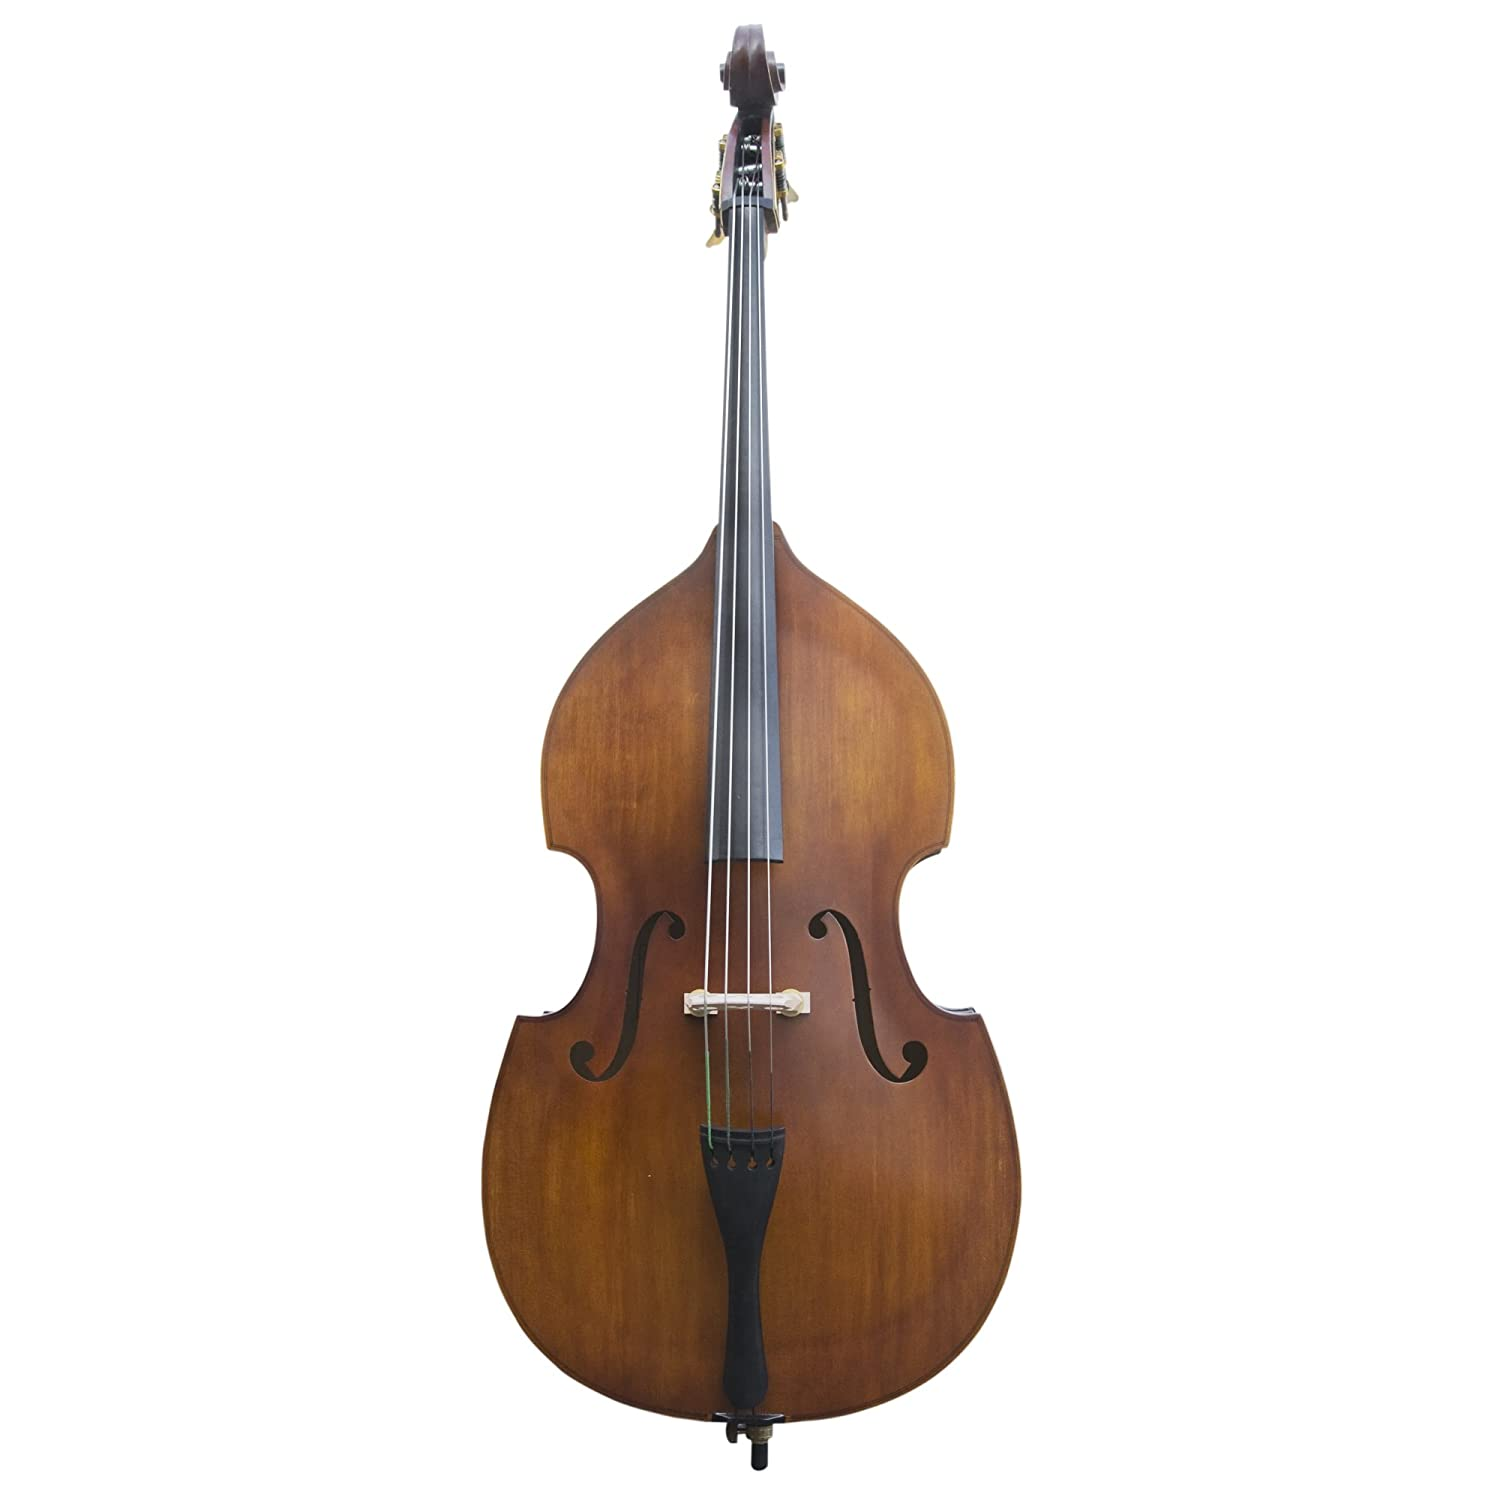 upright bass facts shop for instruments accessories gifts. Black Bedroom Furniture Sets. Home Design Ideas